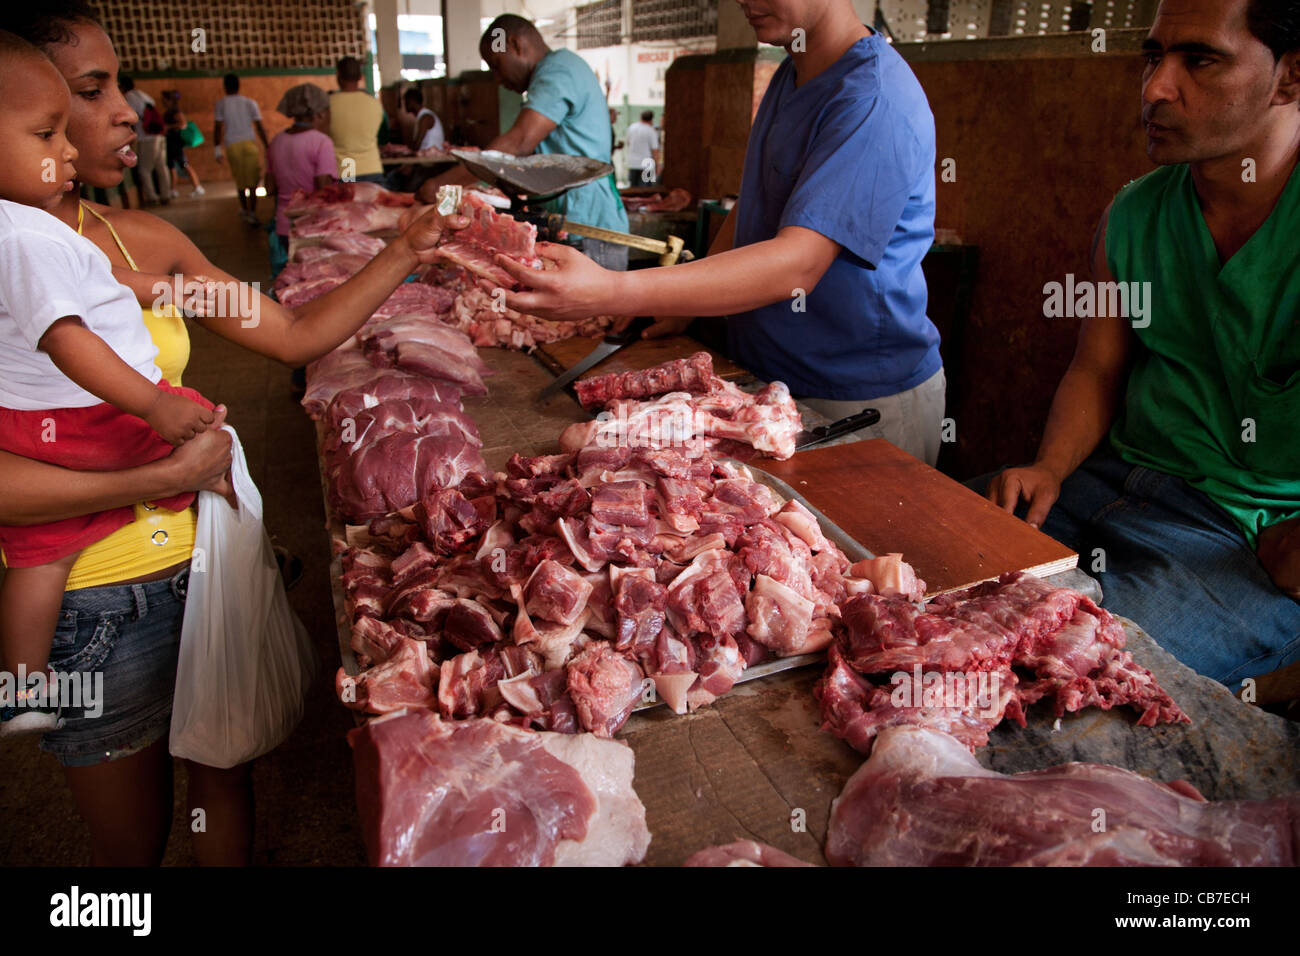 meat market stock images - photo #44